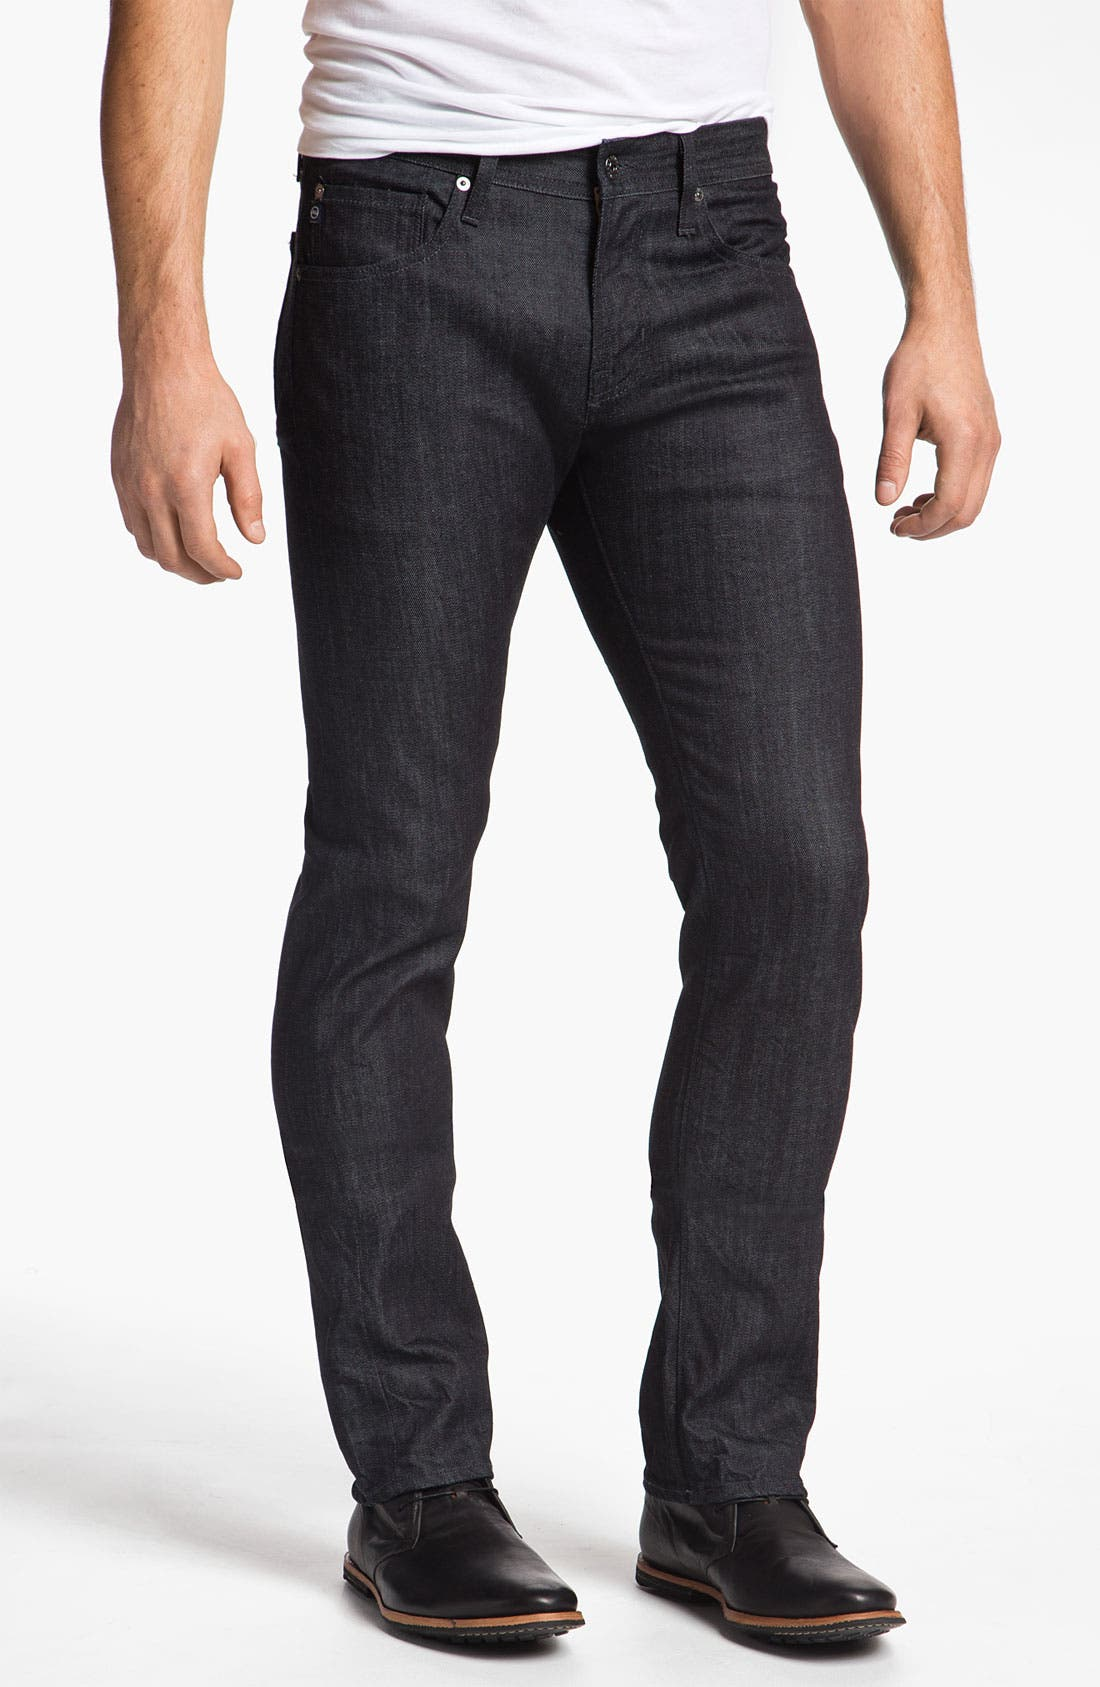 Main Image - AG Jeans 'Matchbox' Slim Straight Leg Jeans (Baltic)(Save Now through 12/9)